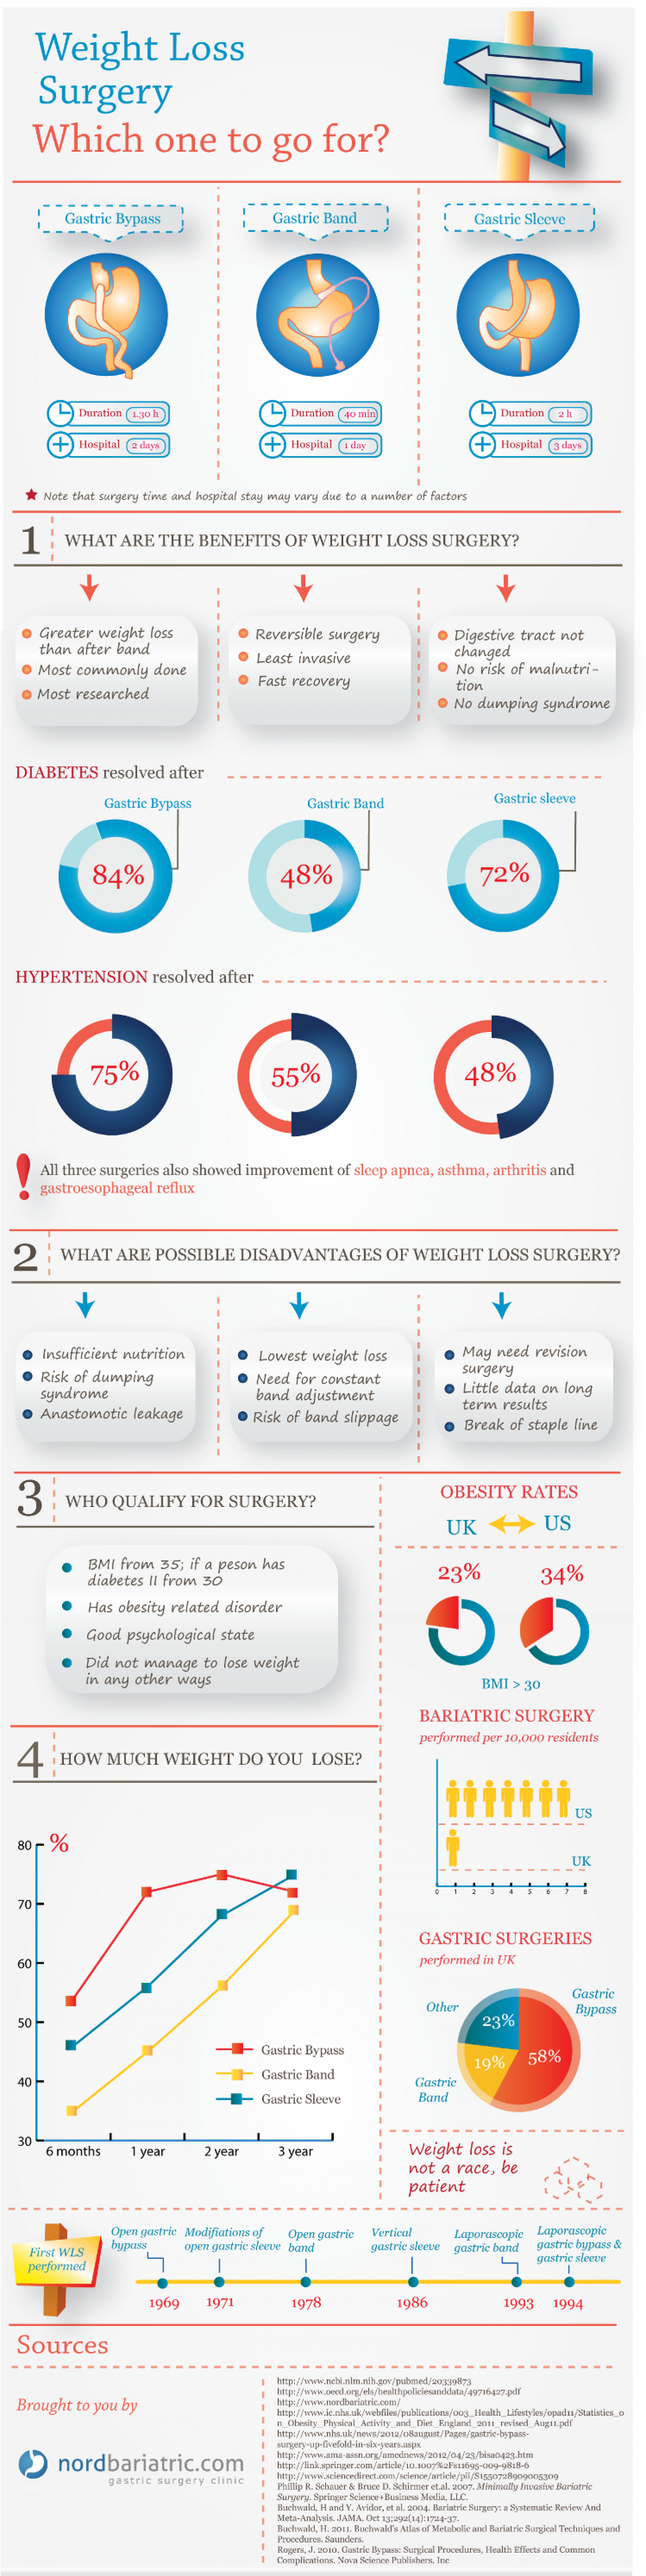 Weight Loss Surgery Comparison Visual.ly